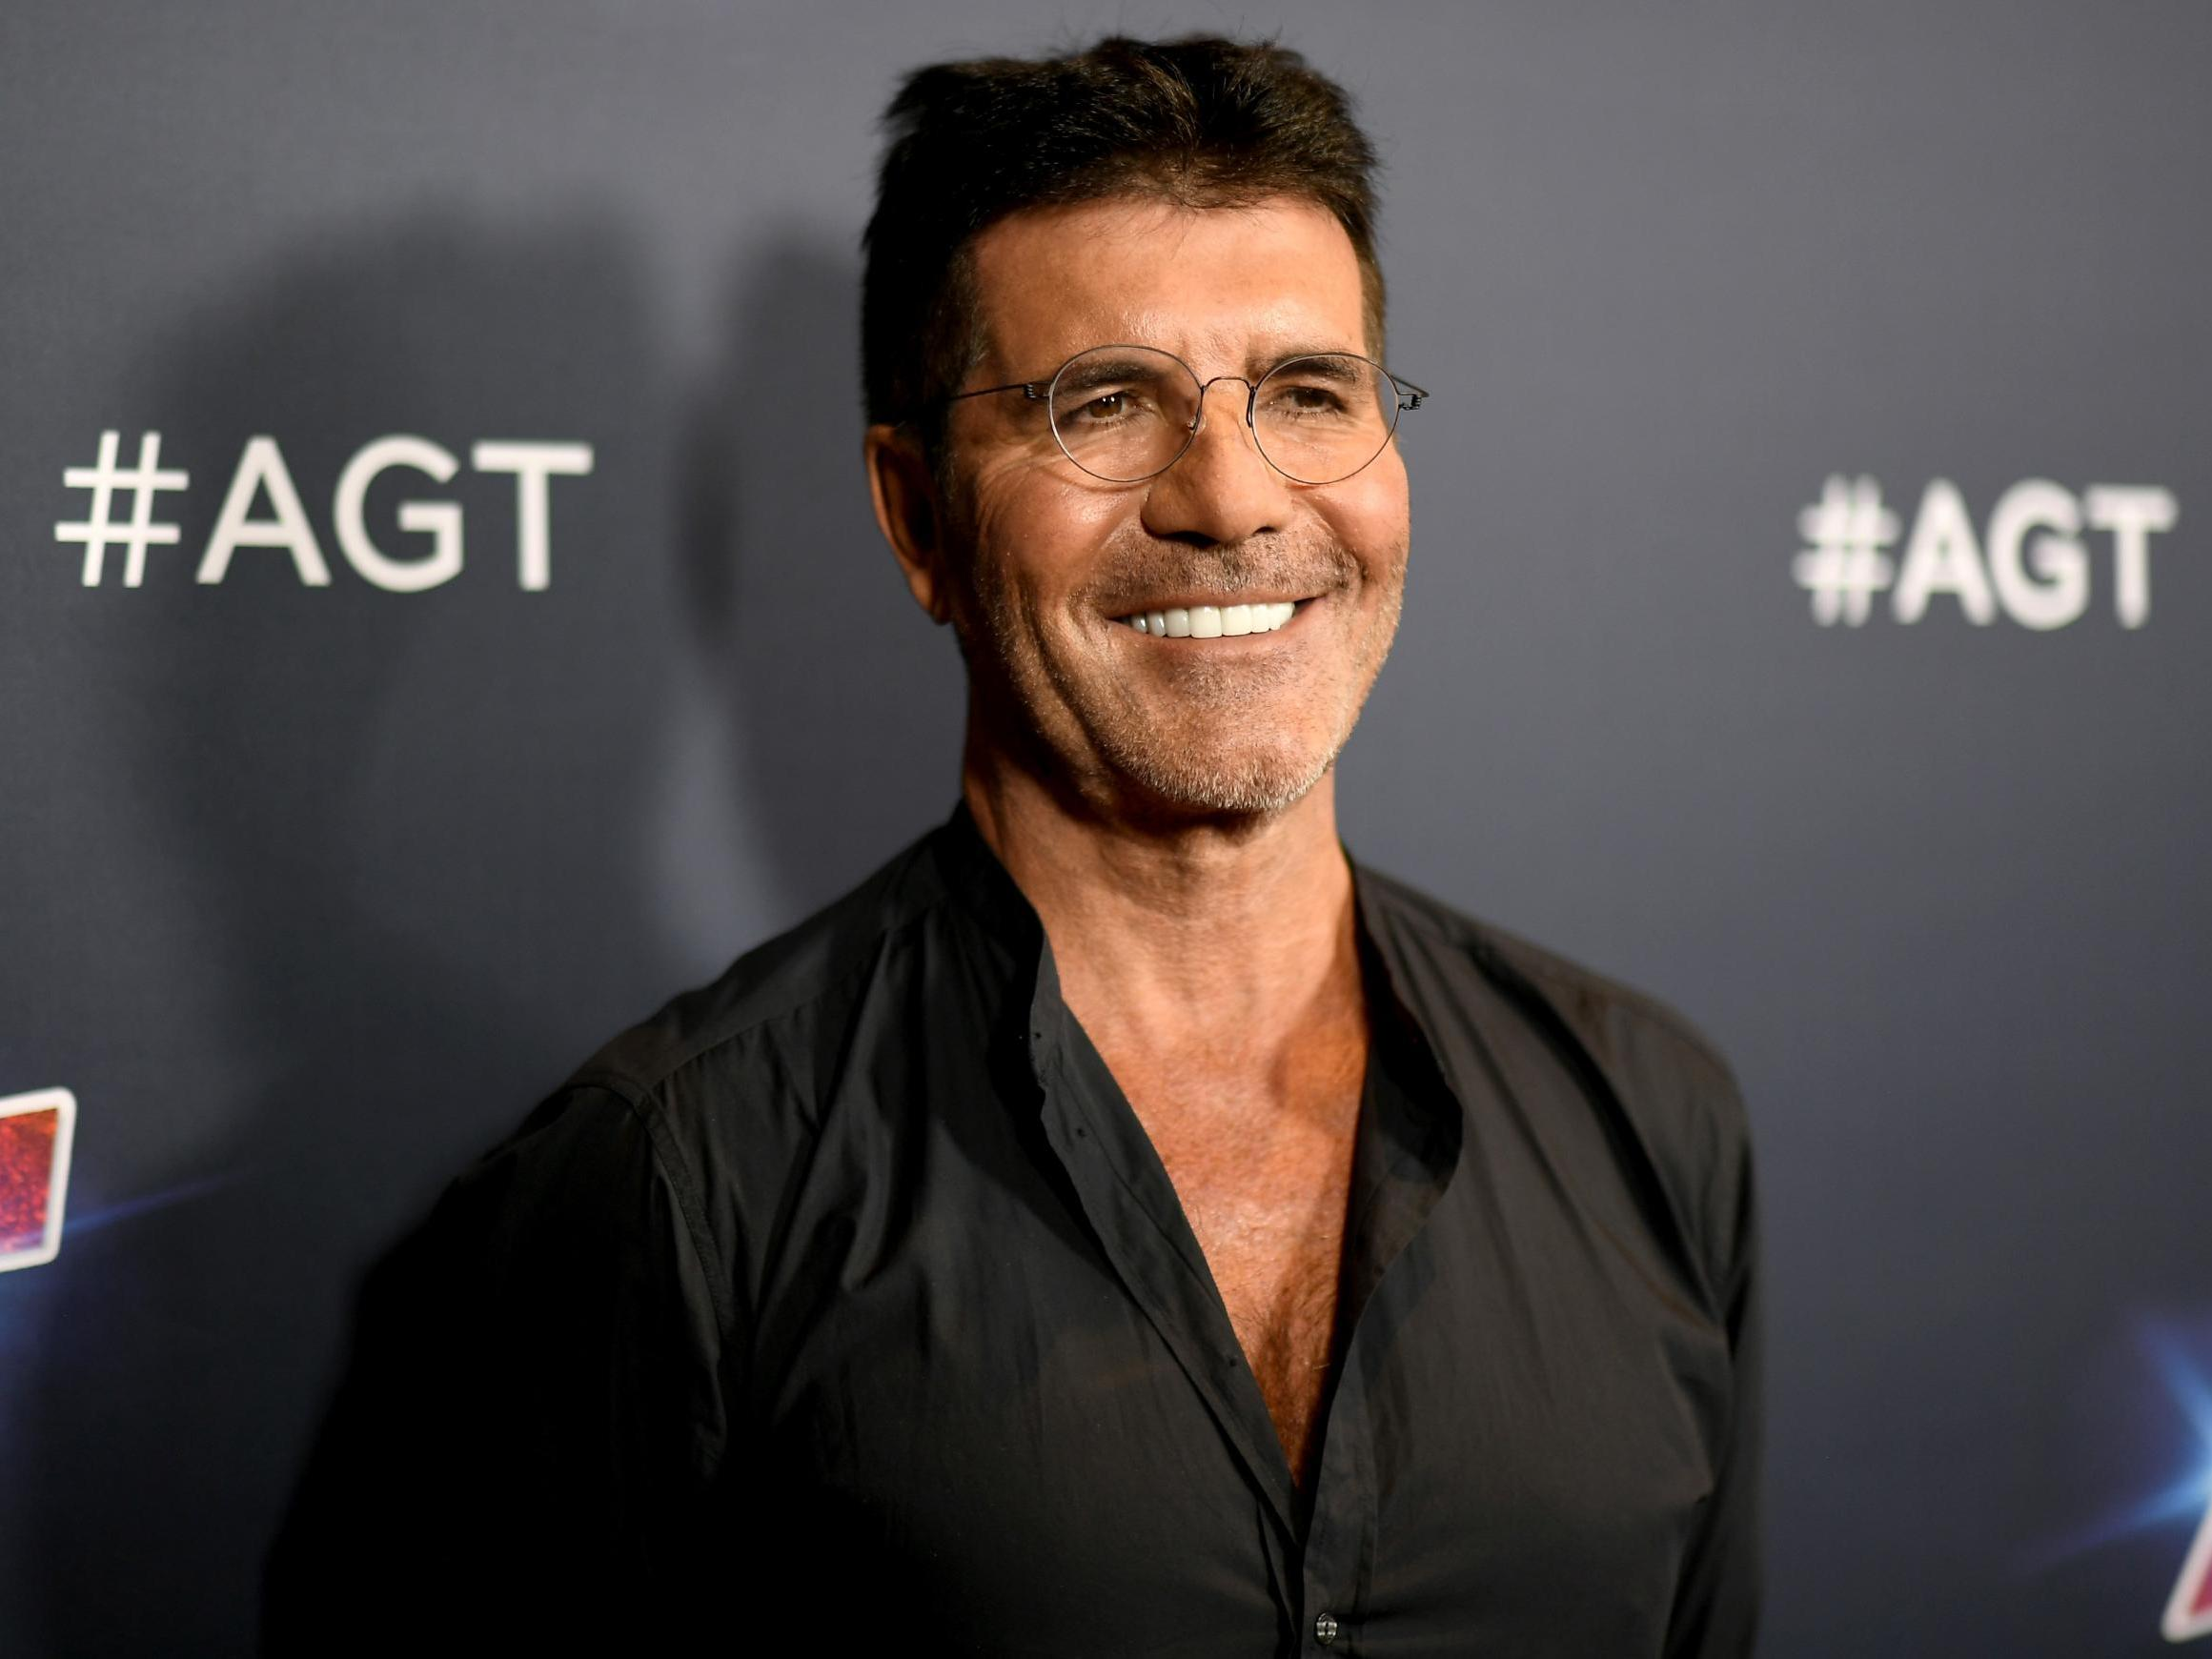 Simon Cowell In Hospital After Breaking Back On Family Bike Ride The Independent The Independent